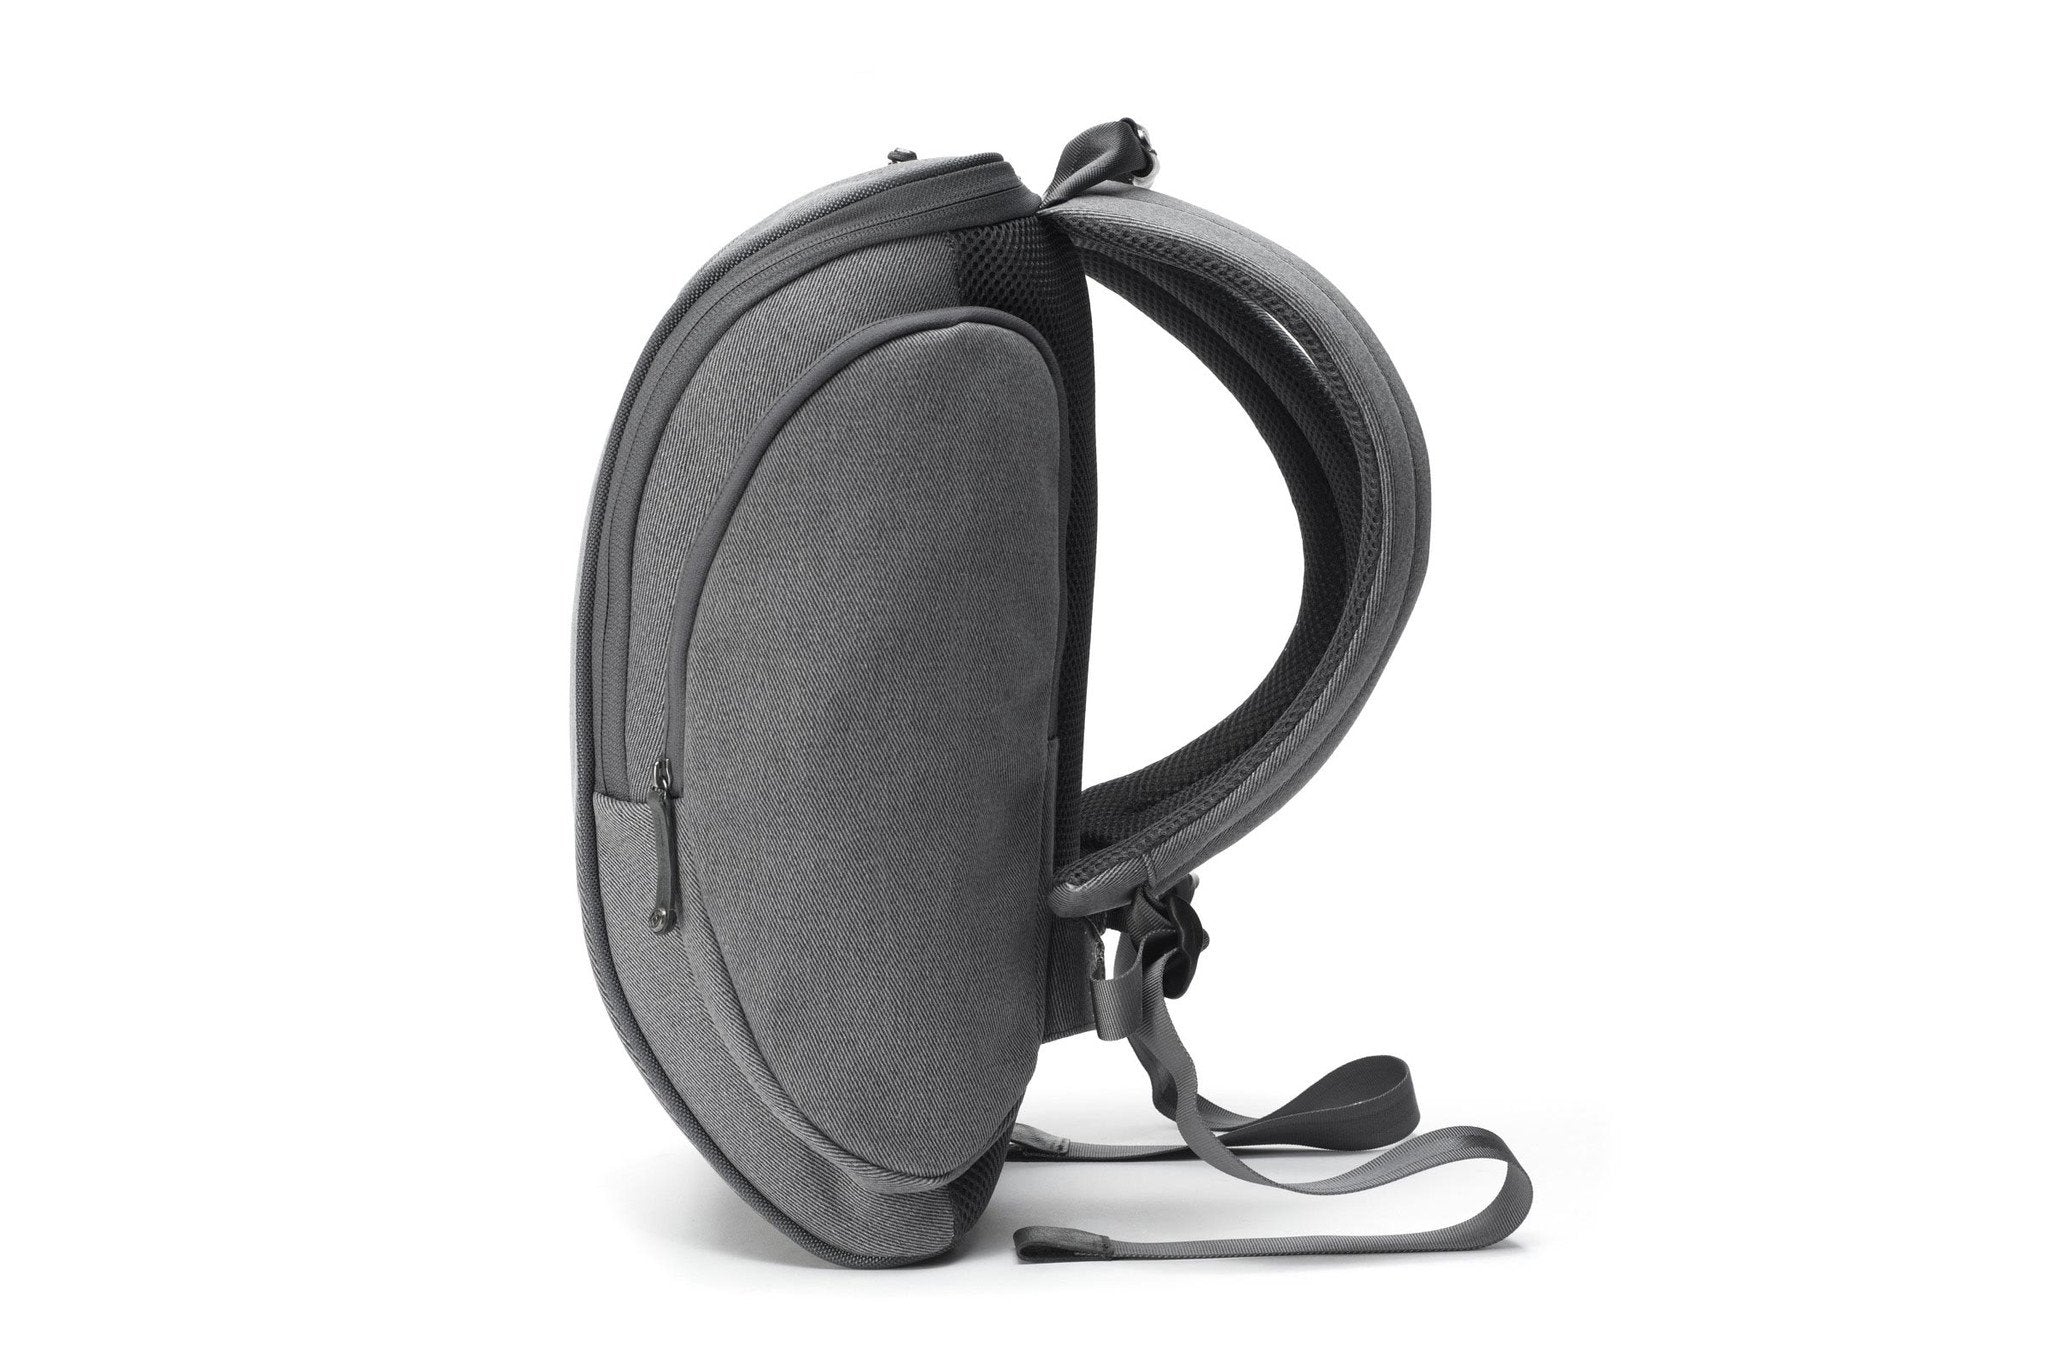 04382453b304 Booq Laptop Backpack - Cobra Squeeze · Bionic Macbook Laptop Backpack  Leather Details for 15